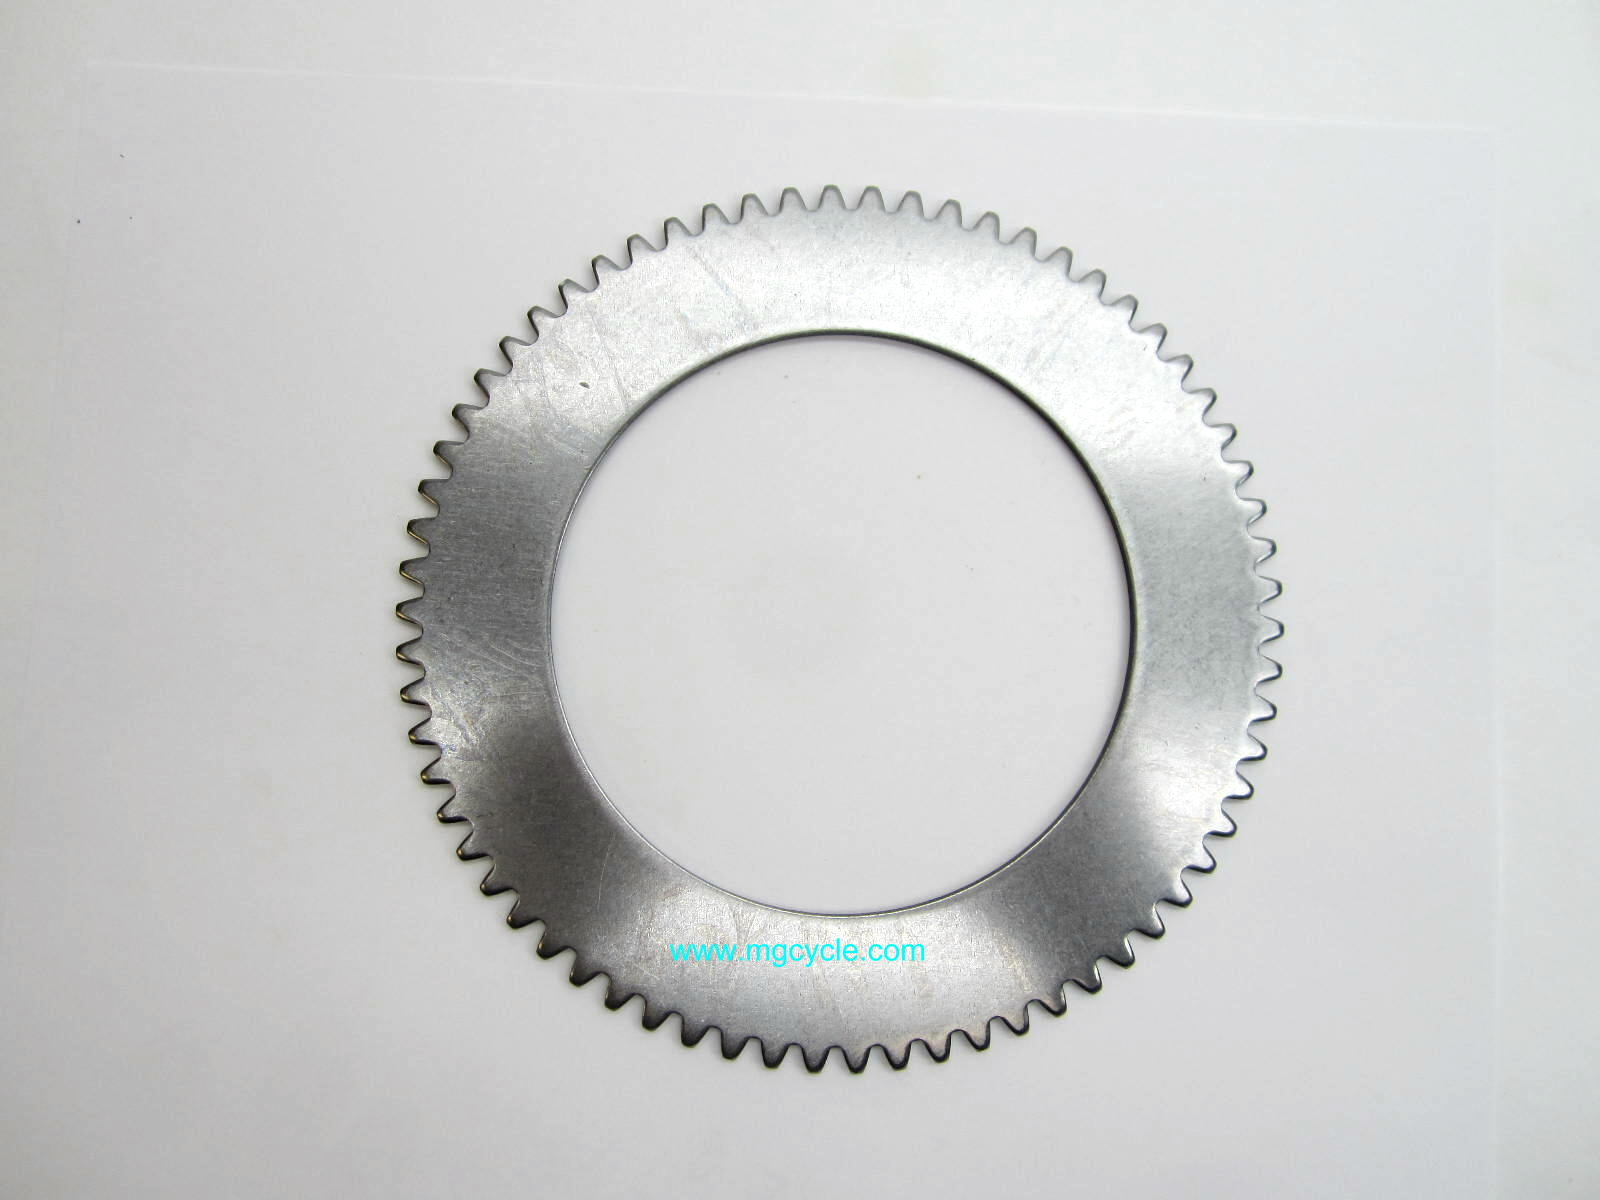 Clutch intermediate plate, middle plate GU12083200